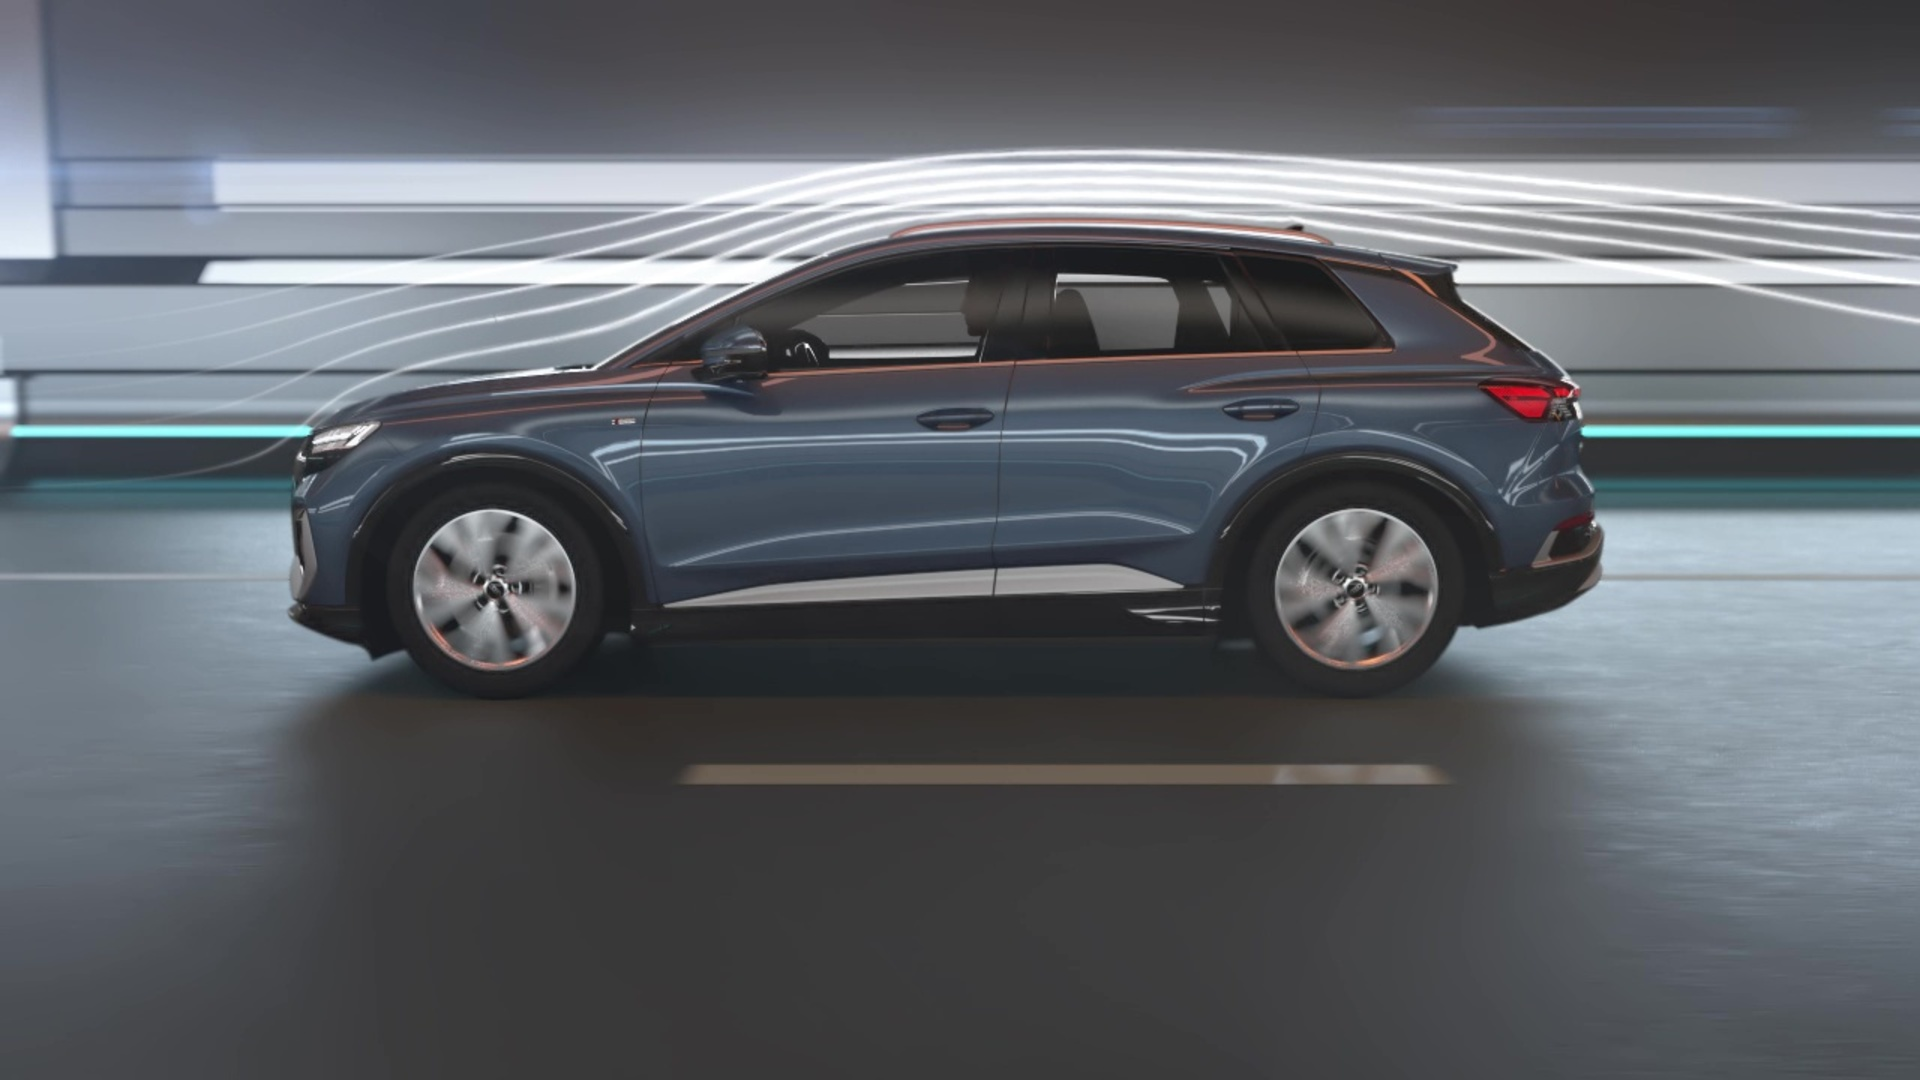 Animation: Aerodynamics of the Audi Q4 e-tron